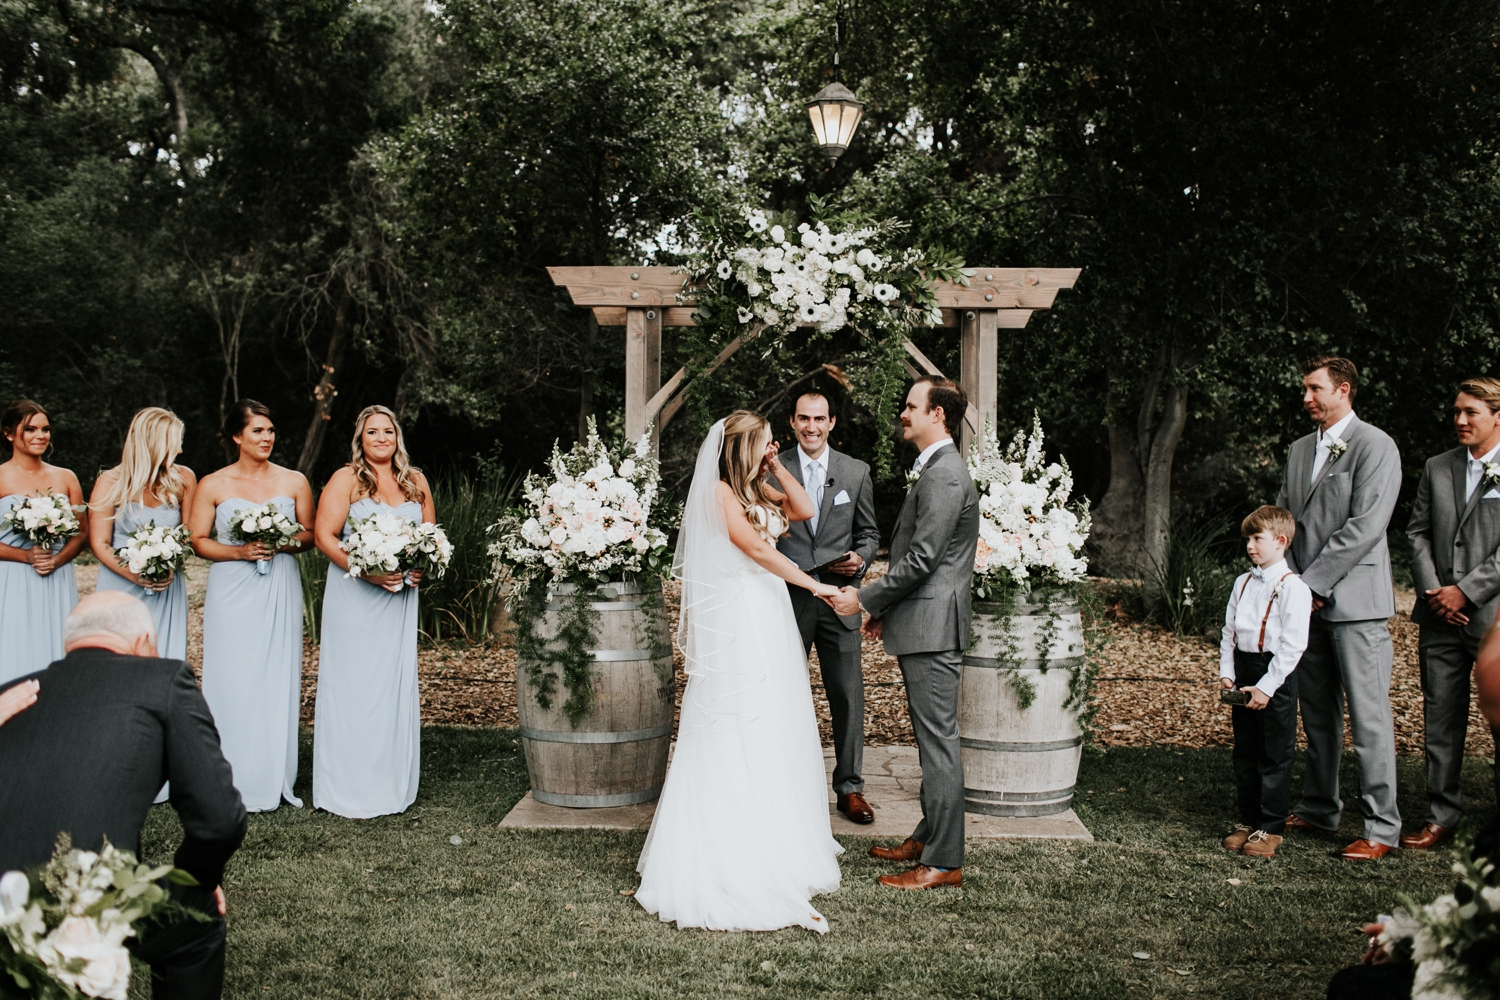 LVL Weddings and Events Temeucula Creek Inn